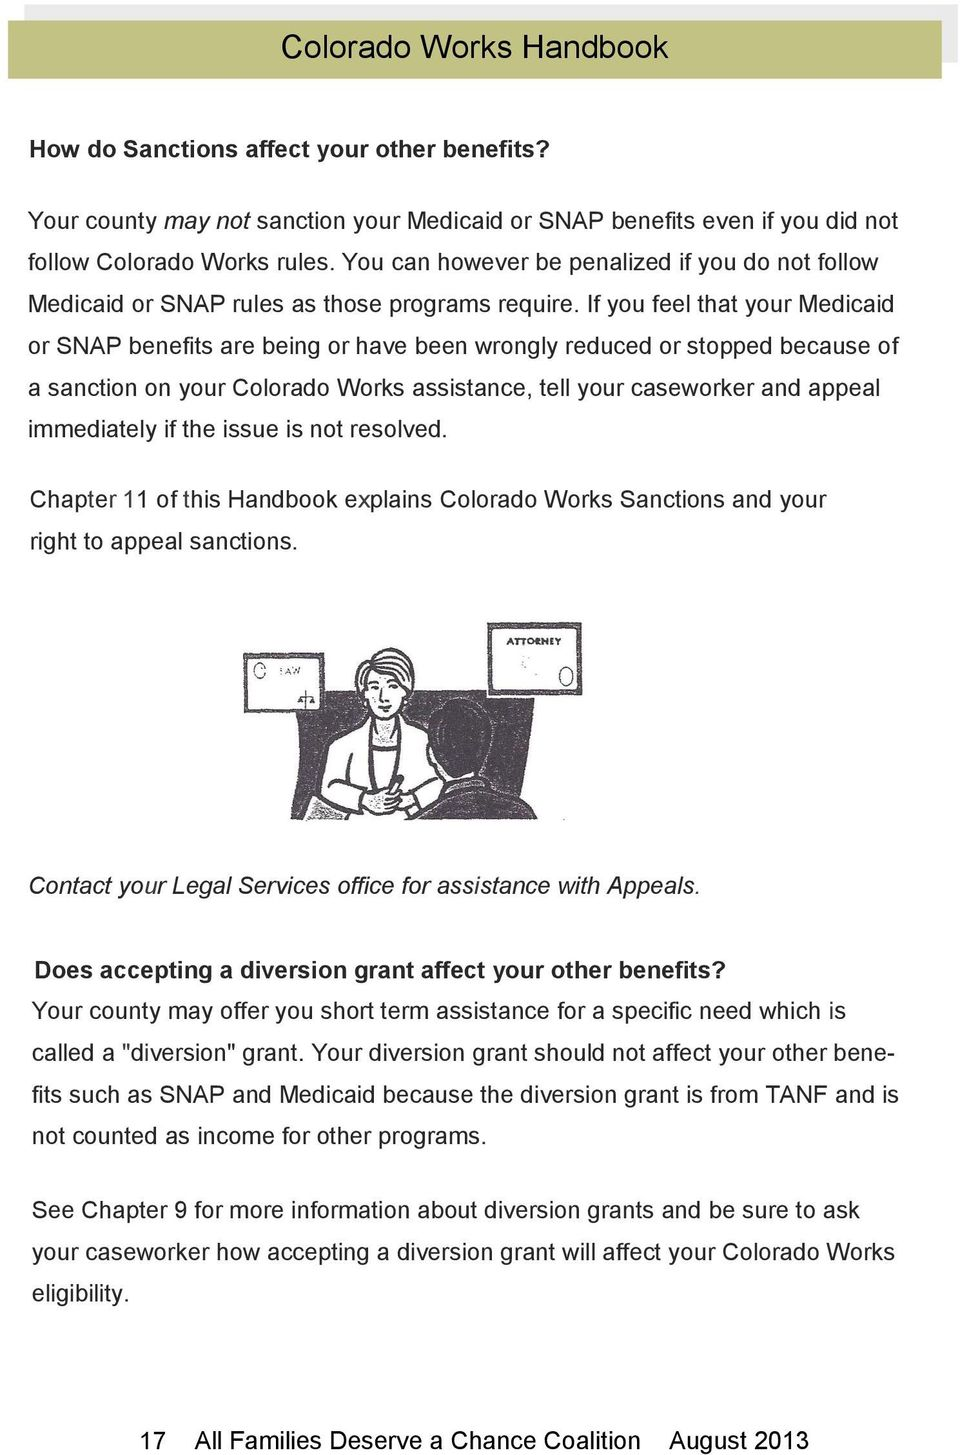 If you feel that your Medicaid or SNAP benefits are being or have been wrongly reduced or stopped because of a sanction on your Colorado Works assistance, tell your caseworker and appeal immediately